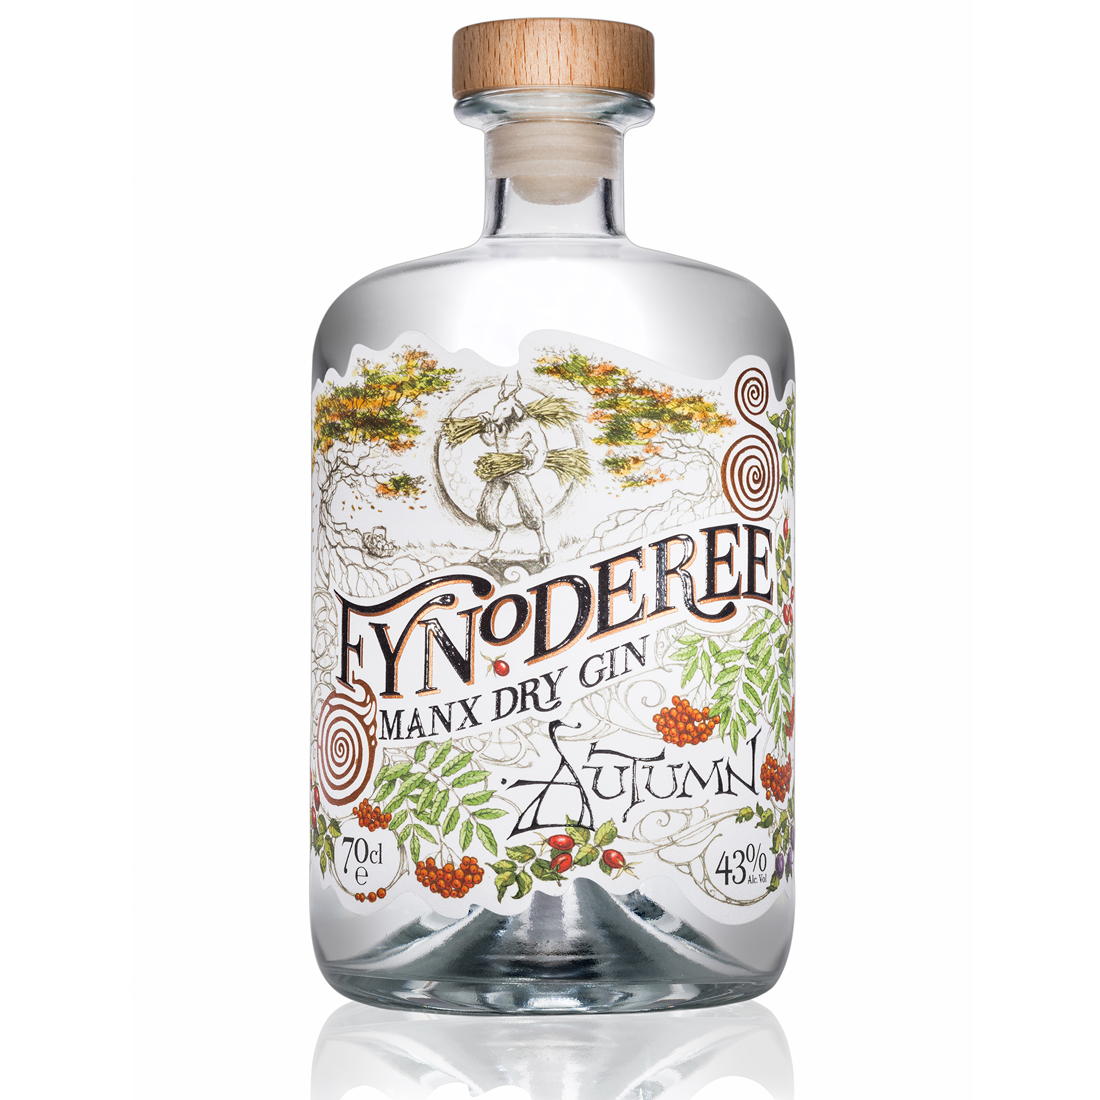 SOLD OUT: Fynoderee Manx Dry Gin - Autumn Edition Gin - returning Sept 2019!